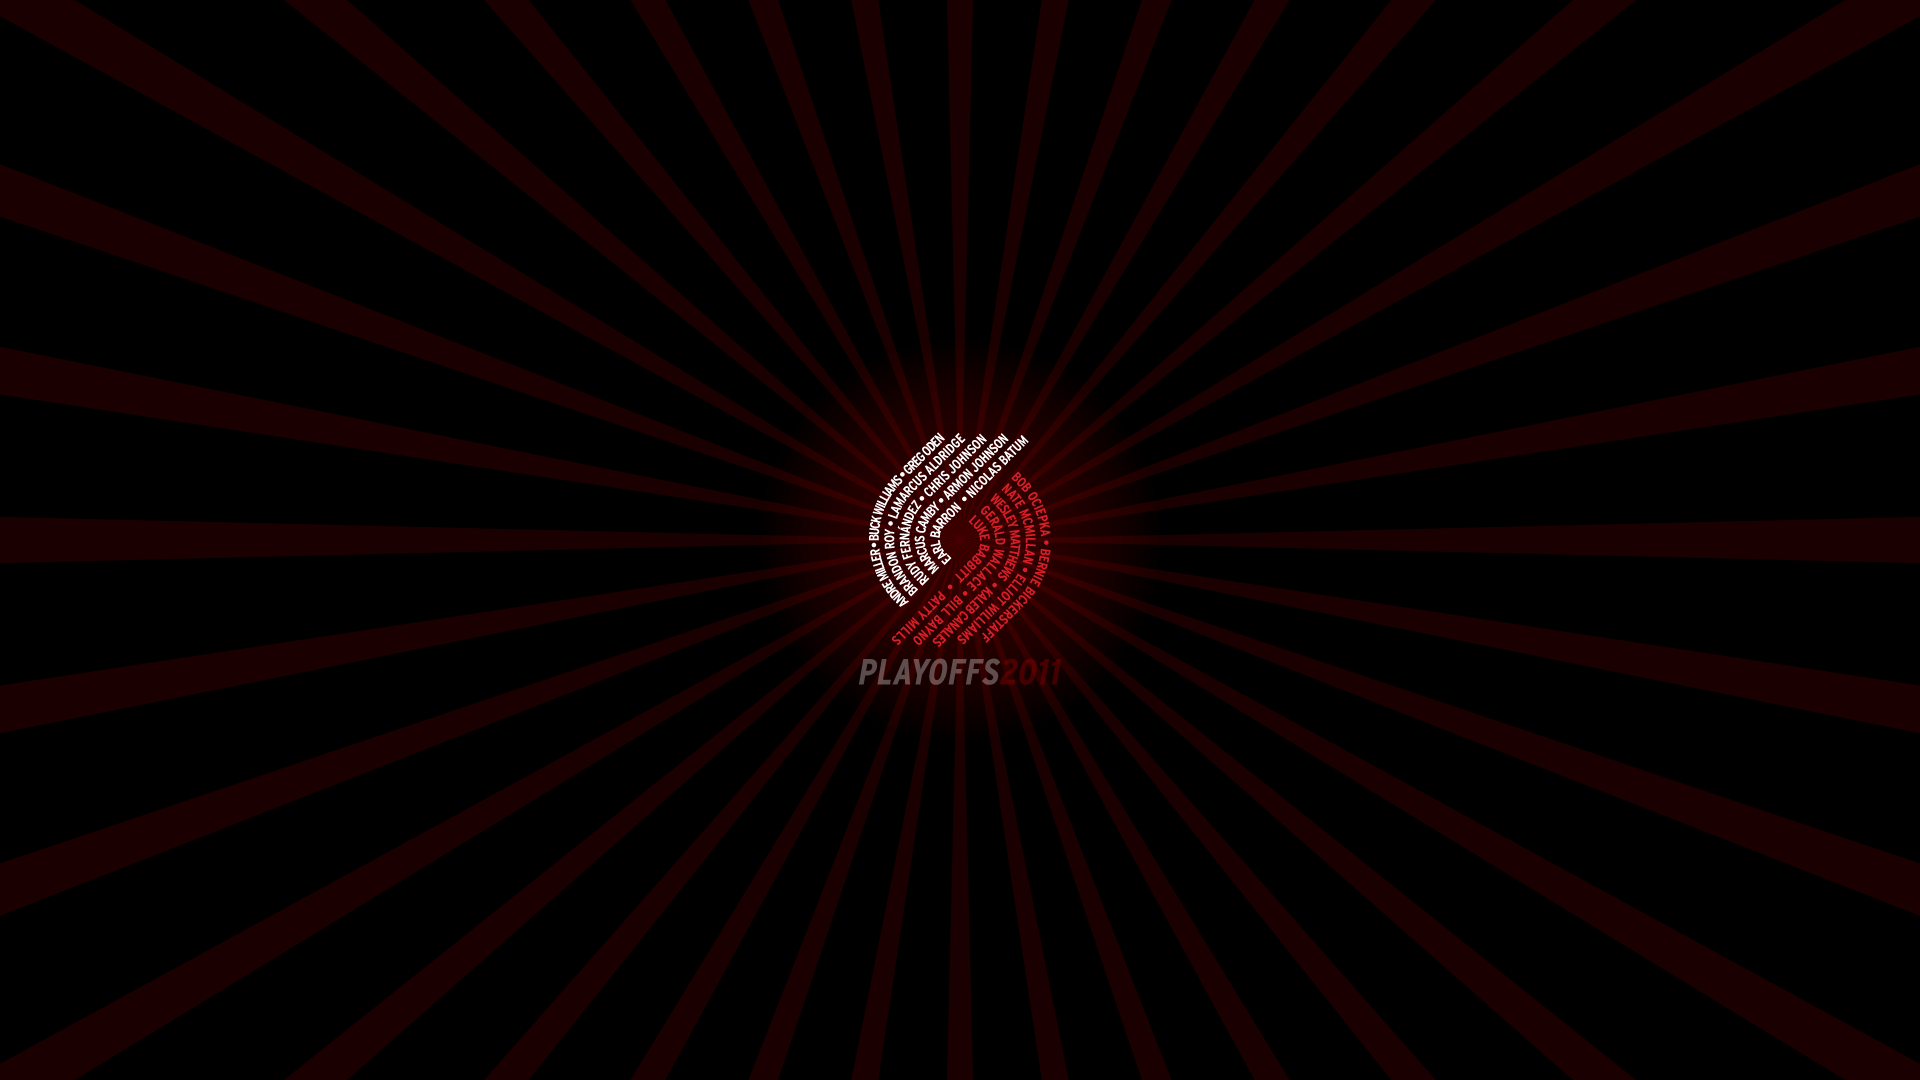 Blazers Playoffs2011 1920x1080 by rossconkey